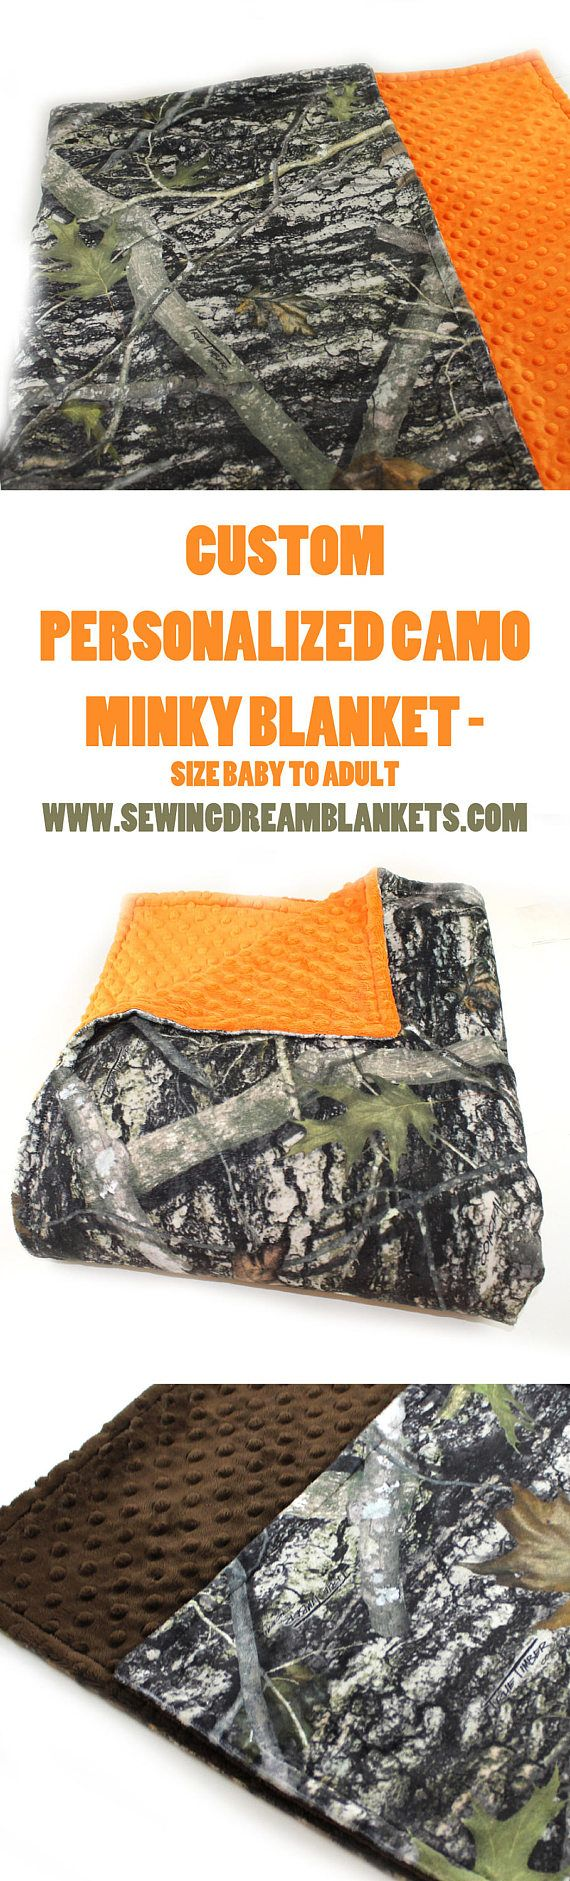 SALE Camo Blanket / 60 x 70 Minky Adult Blanket Personalized - personalized gift